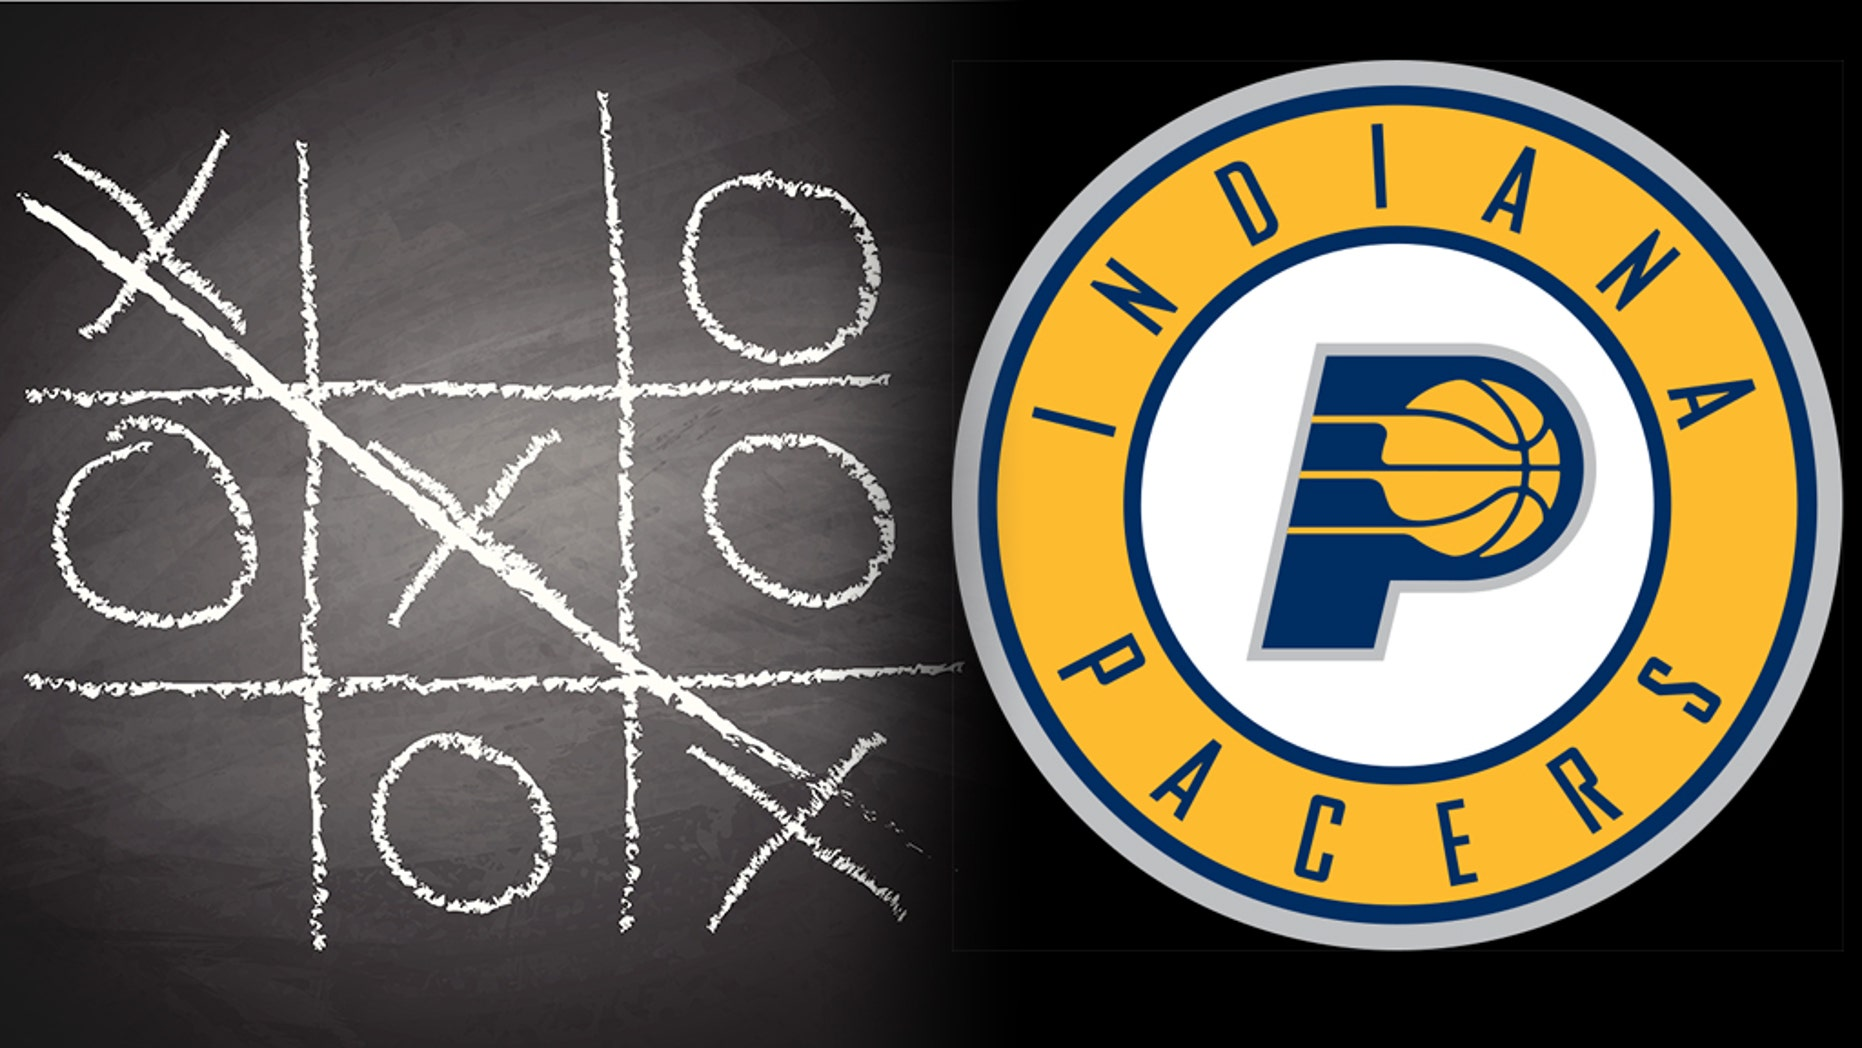 An embarrassing game of tic-tac-toe between two Indiana Pacers fans went viral.